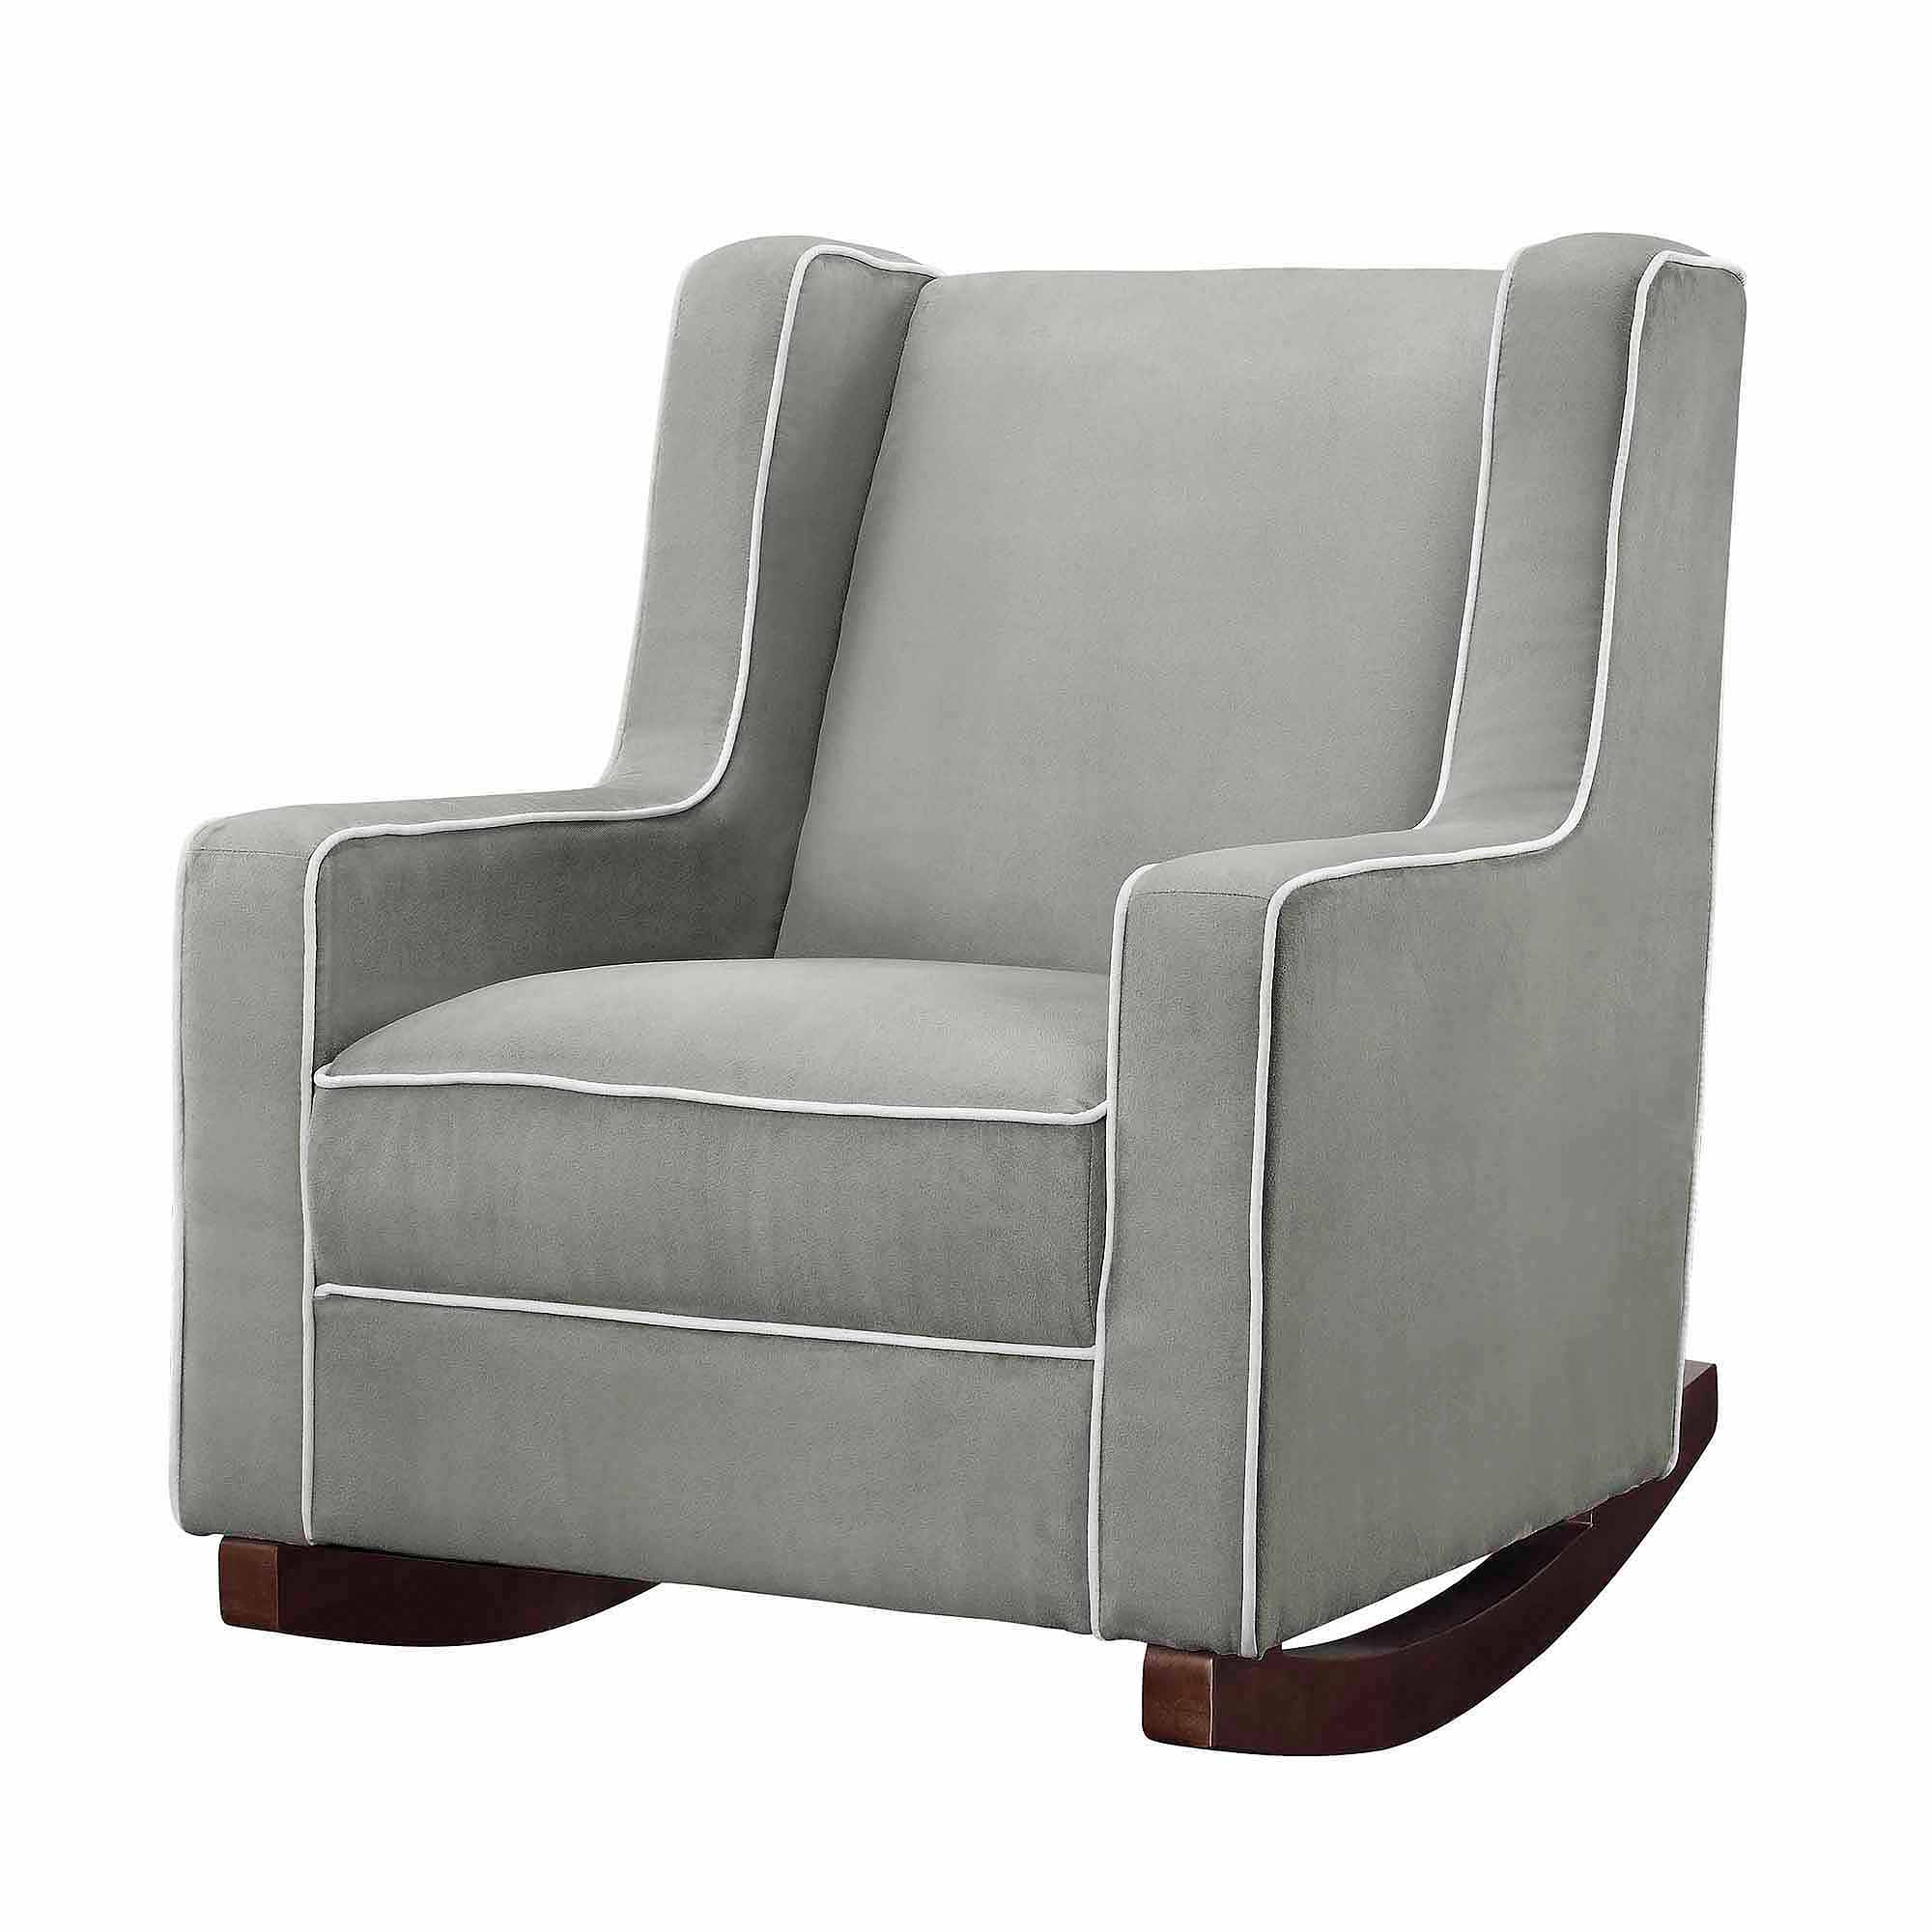 Baby Relax Abby Rocker Gray – Walmart For Most Popular Abbey Swivel Glider Recliners (Gallery 1 of 20)